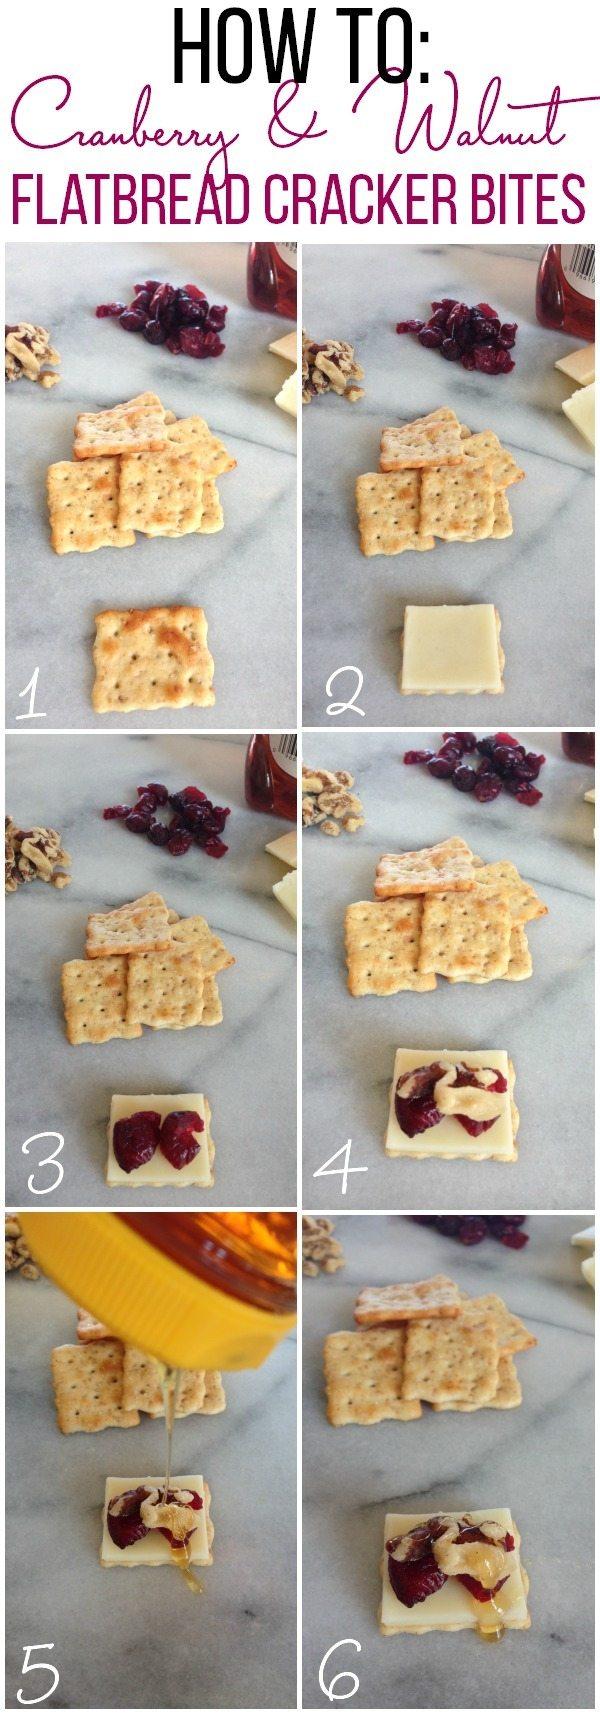 How to make Flatbread Cracker Bites